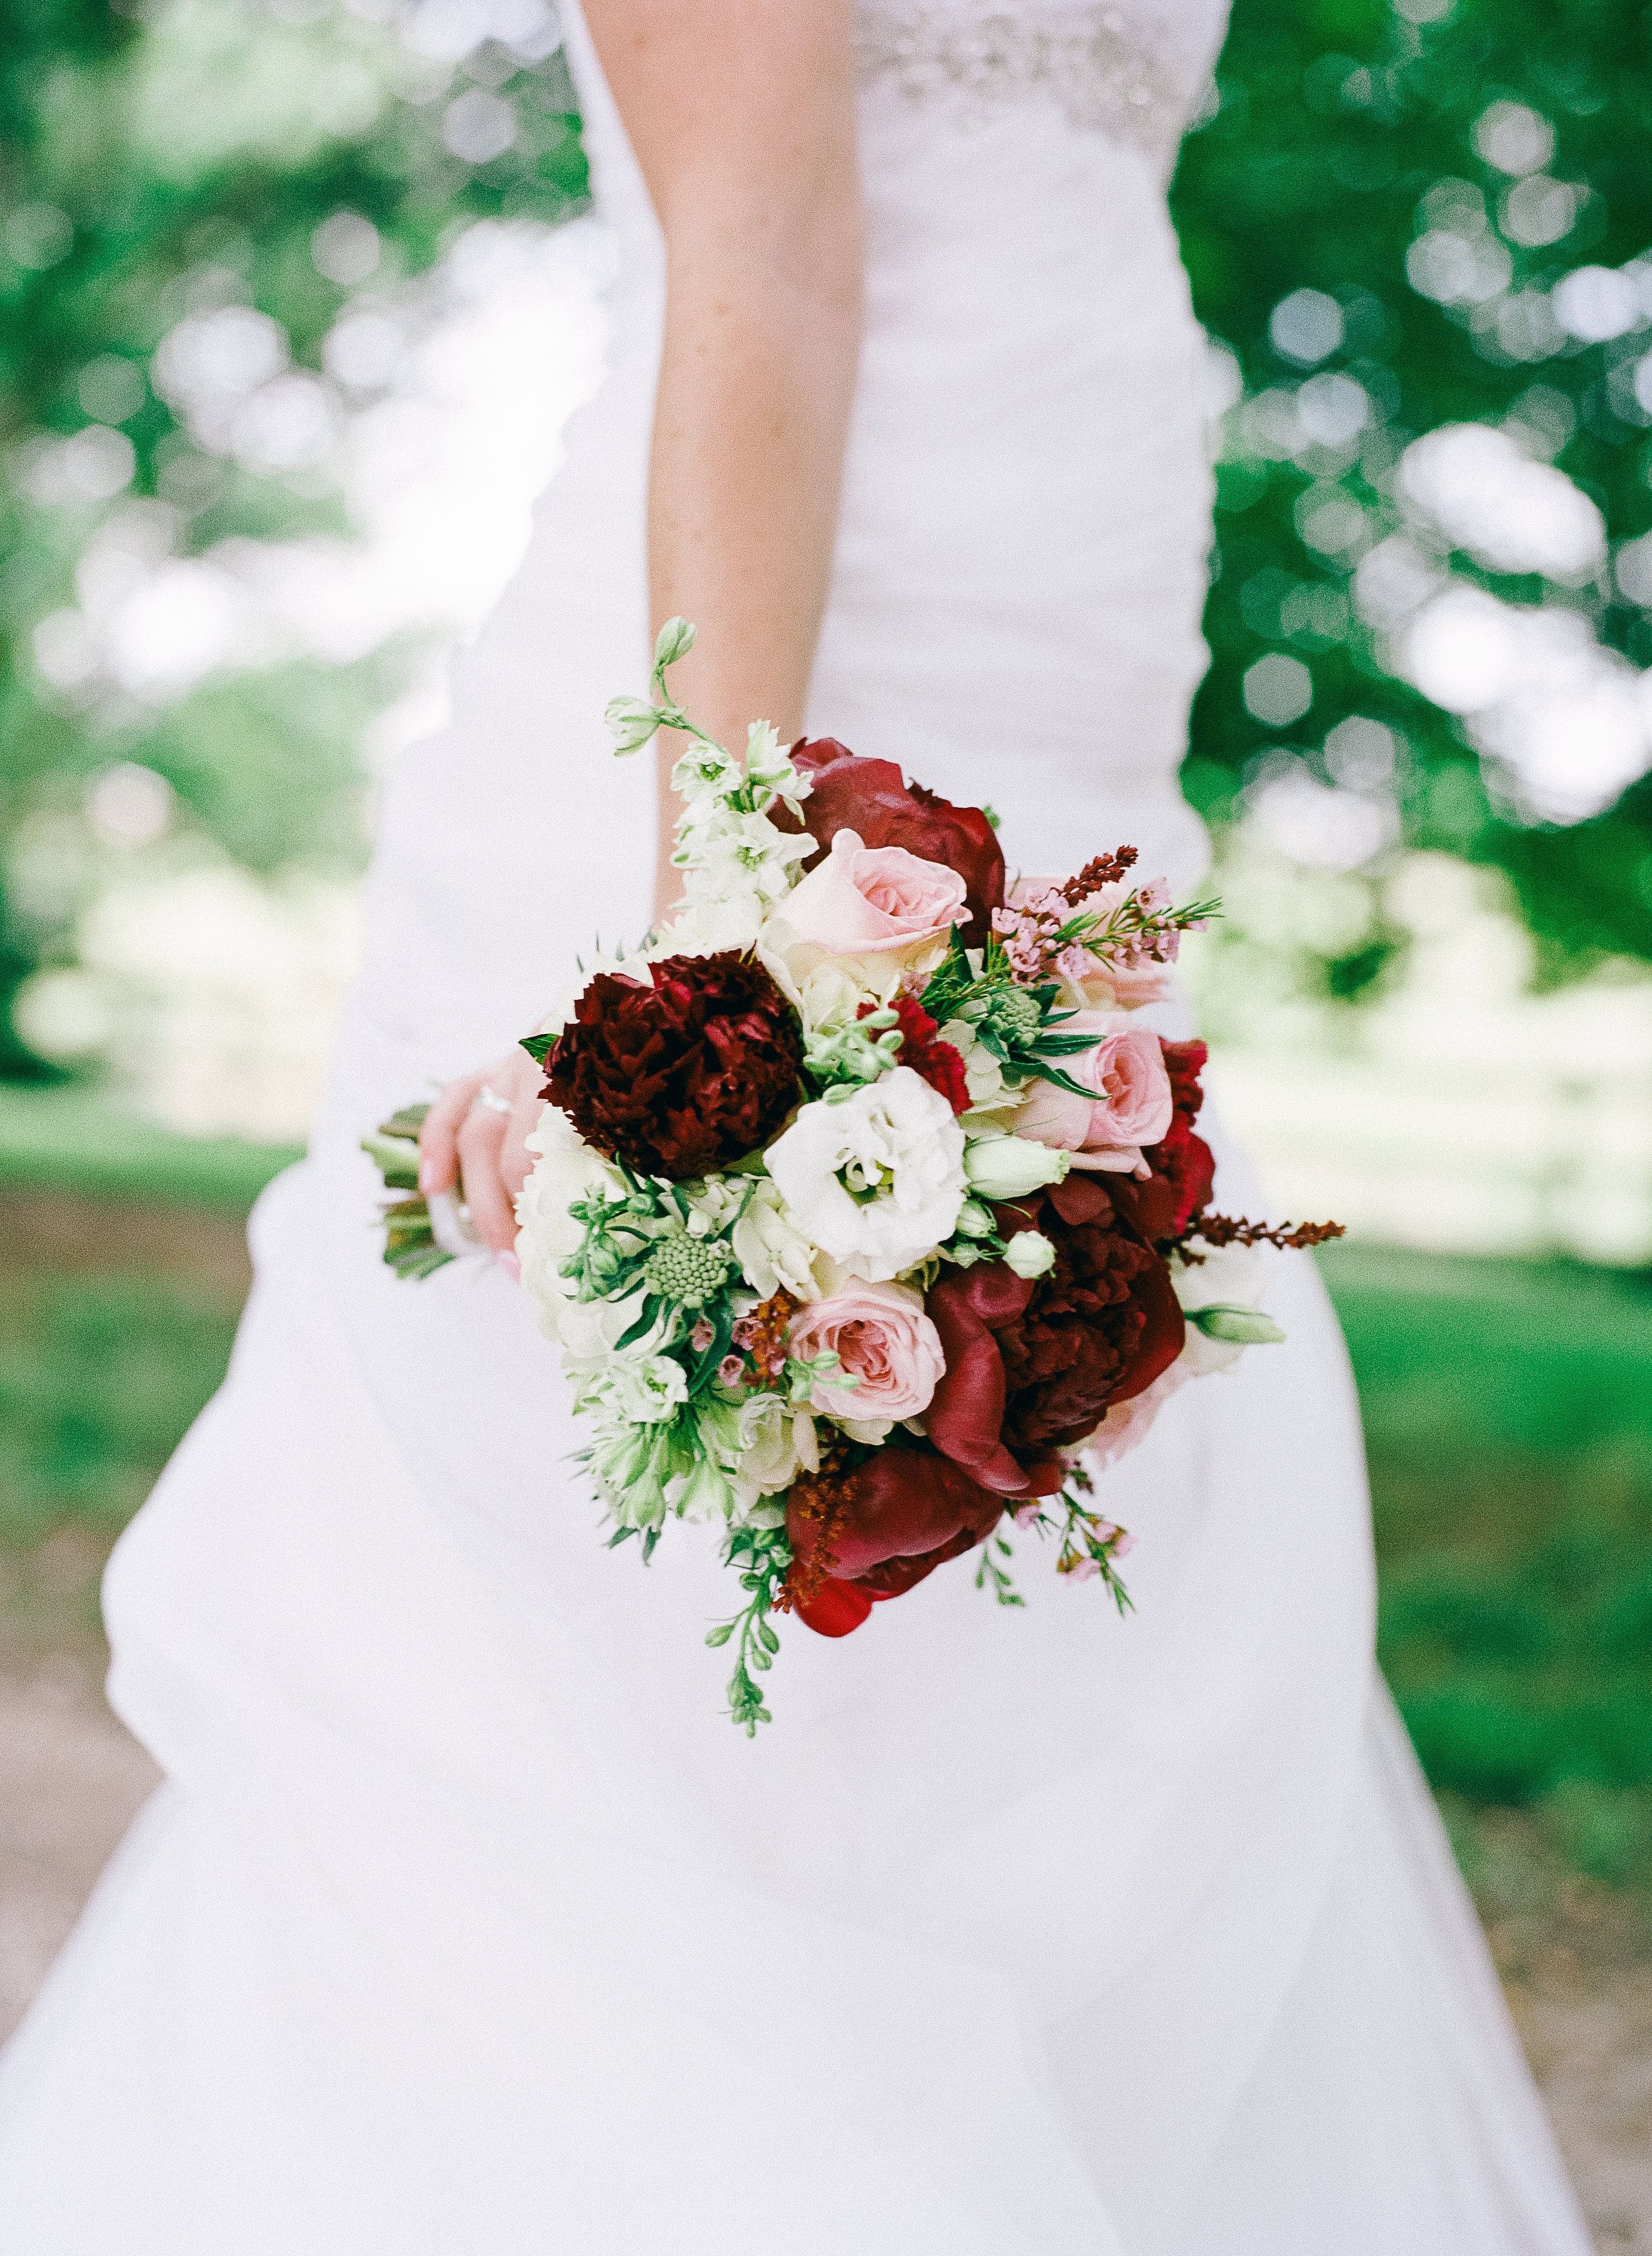 Bridal Bouquet with Burgundy Peonies, Pink Garden Roses